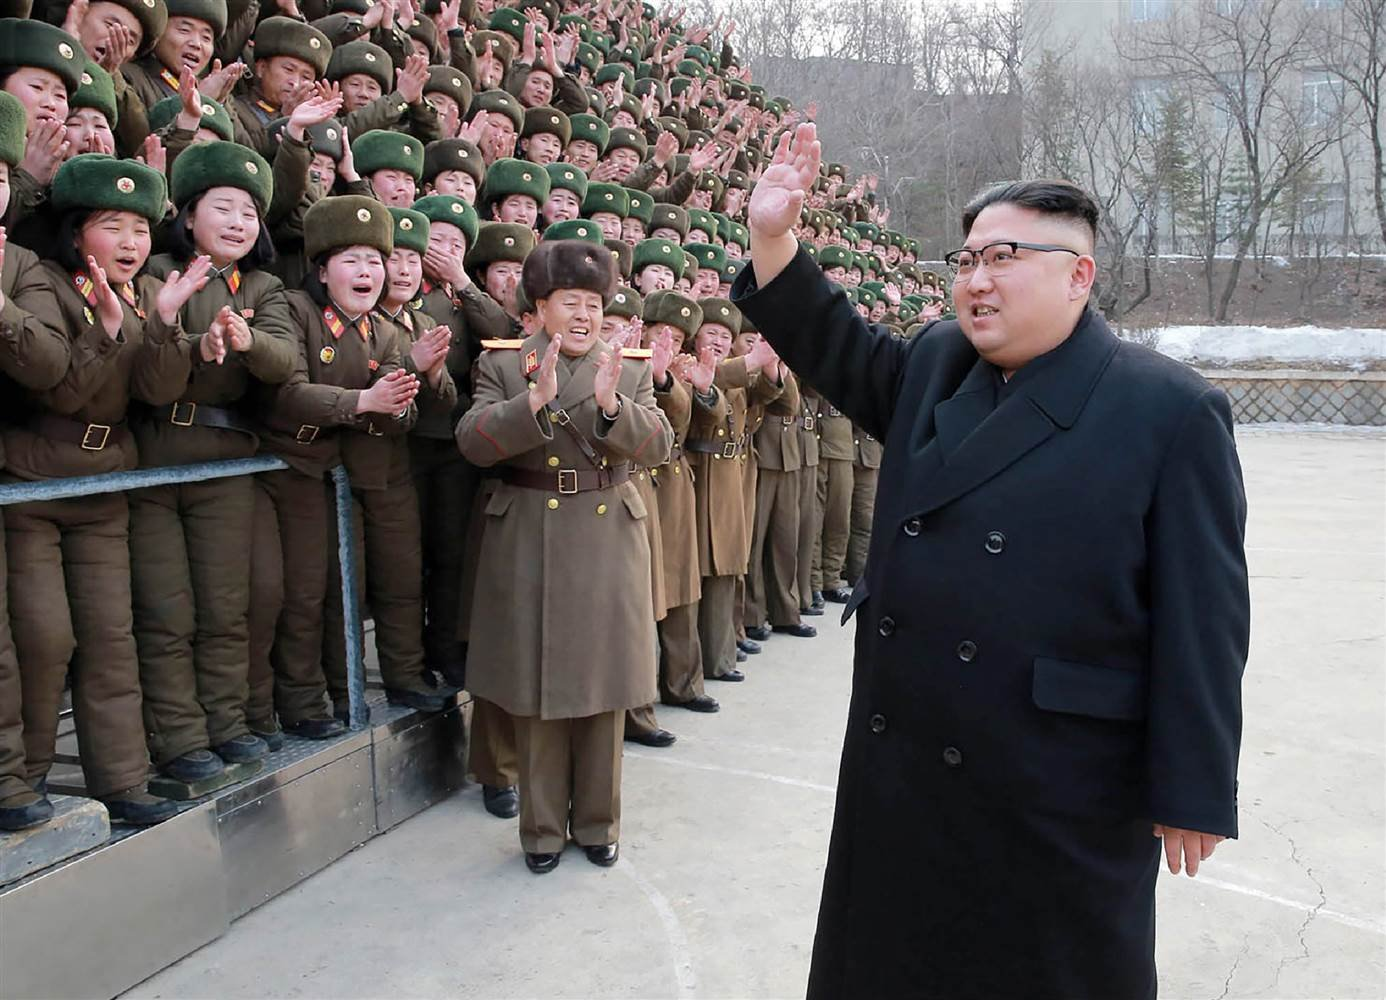 North Korean leader Kim Jong-Un (R) waving as he inspects the headquarters of Large Combined Unit 966 of the KPA at an undisclosed location on March 1, 2017. (KCNA via KNS / AFP/Getty Images)